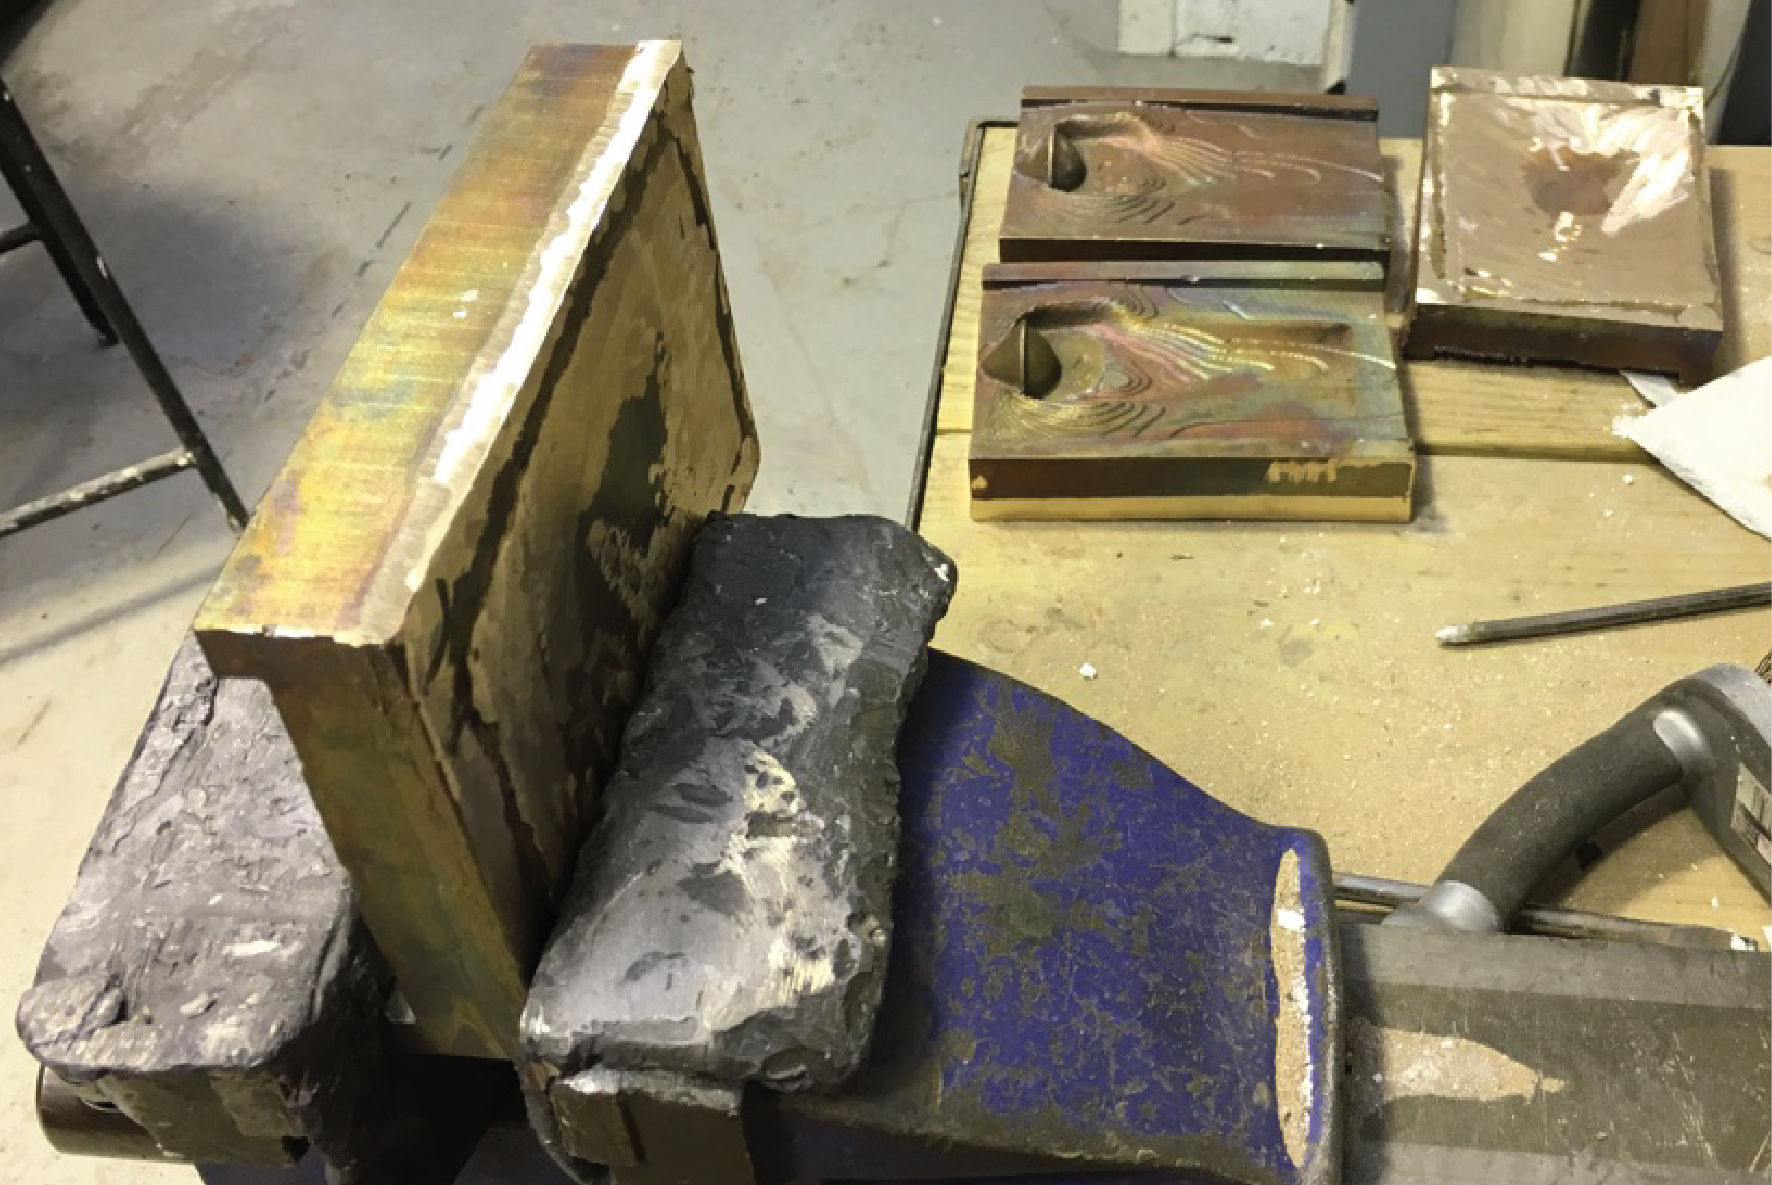 chasing step / grinding the edges and welds